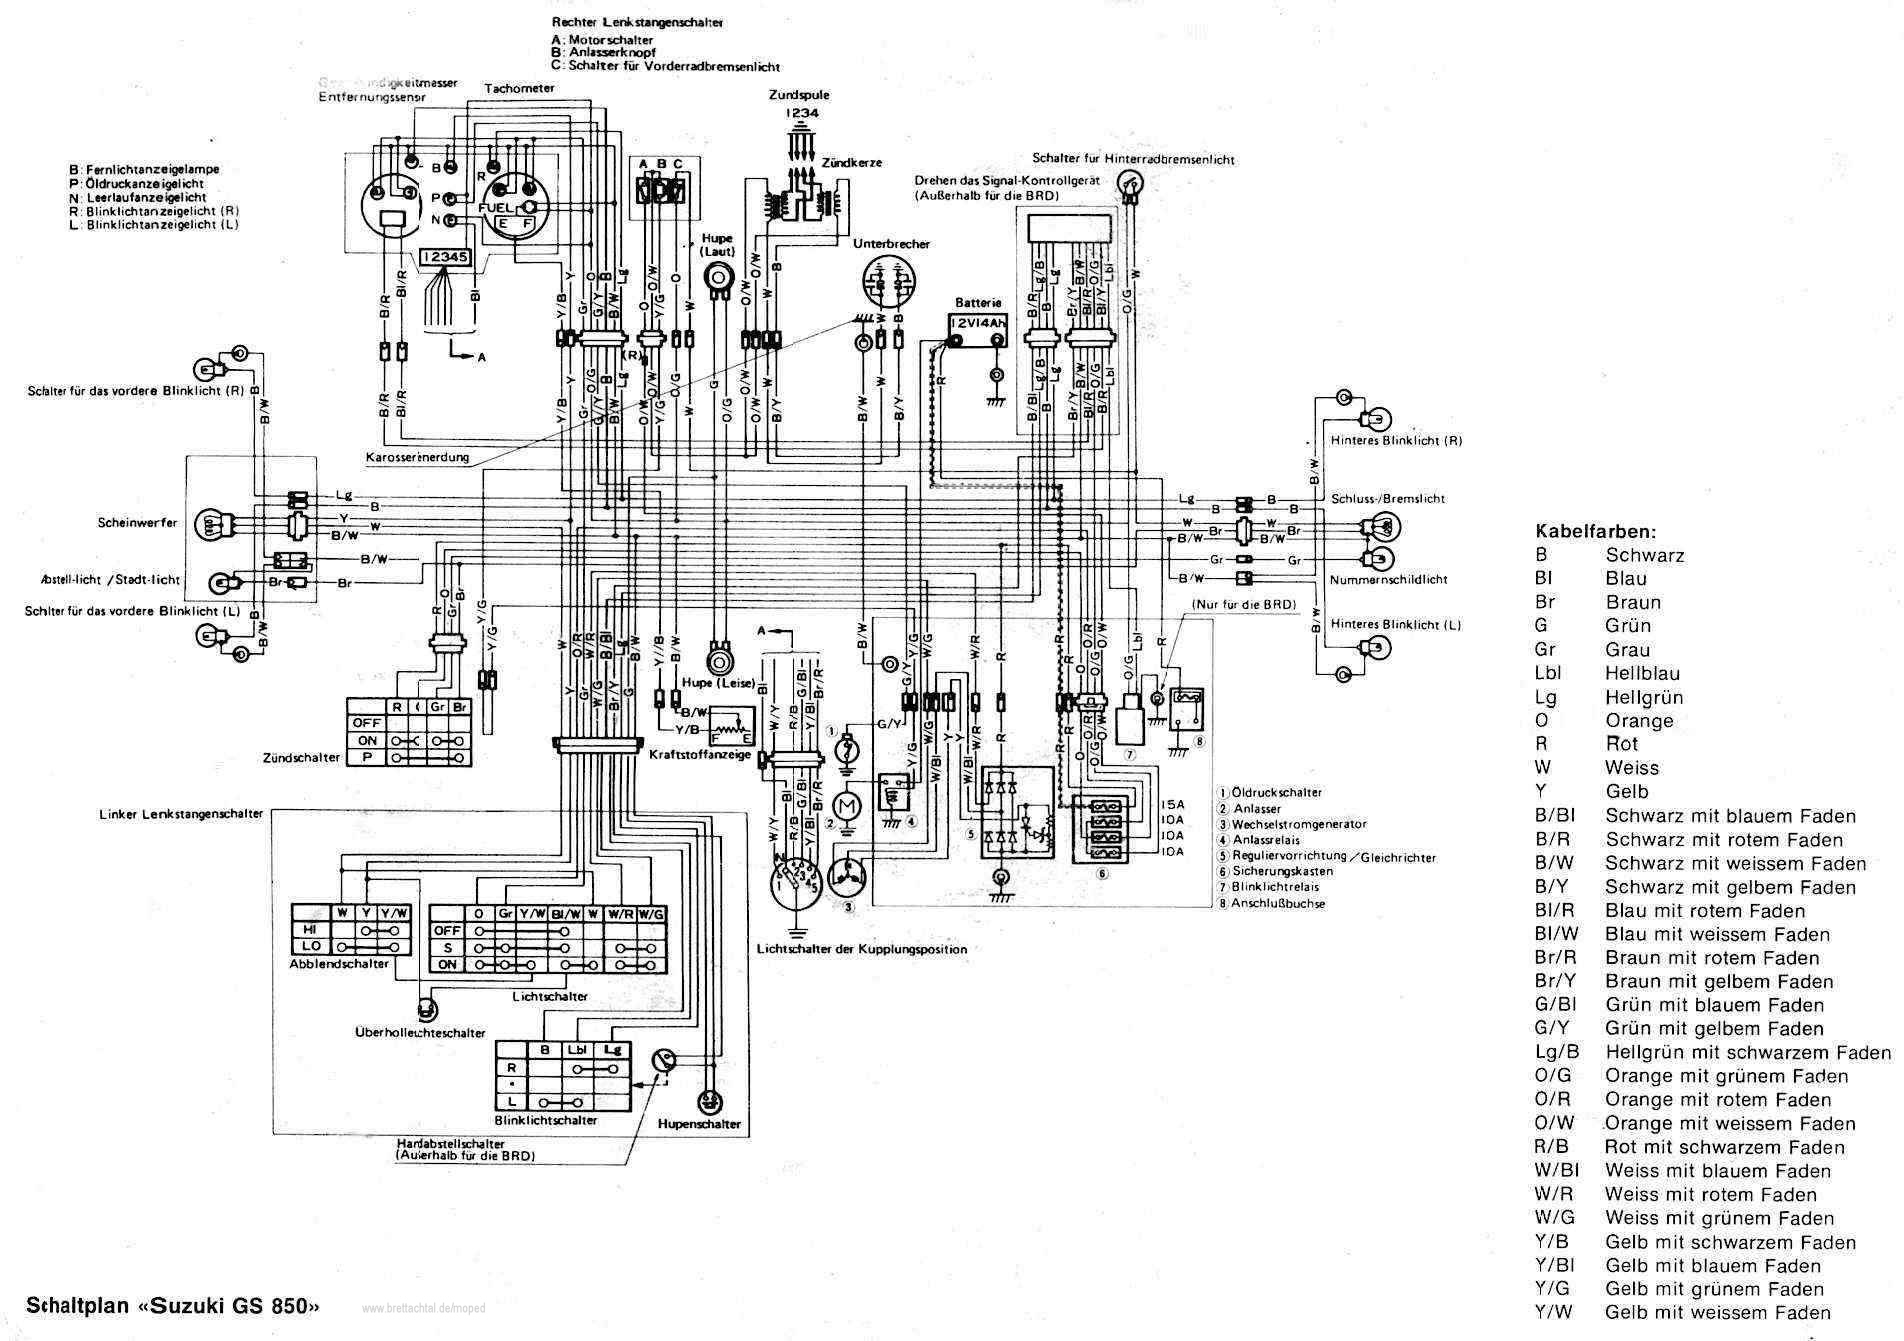 [DIAGRAM] 05 Gsxr 1000 Wiring Diagram FULL Version HD